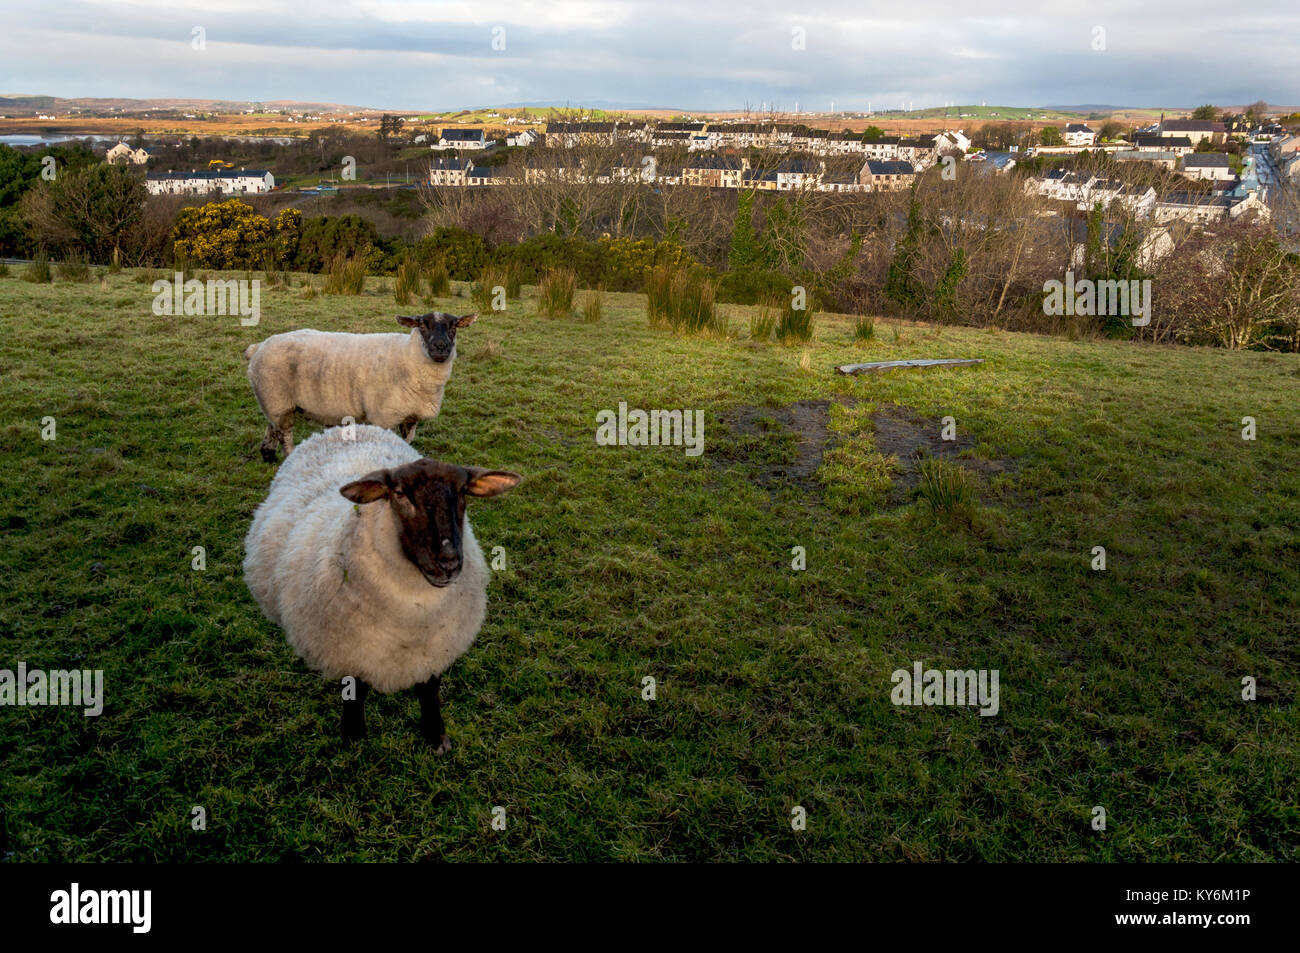 Sheep on a hillside above the village of Ardara, County Donegal, Ireland - Stock Image